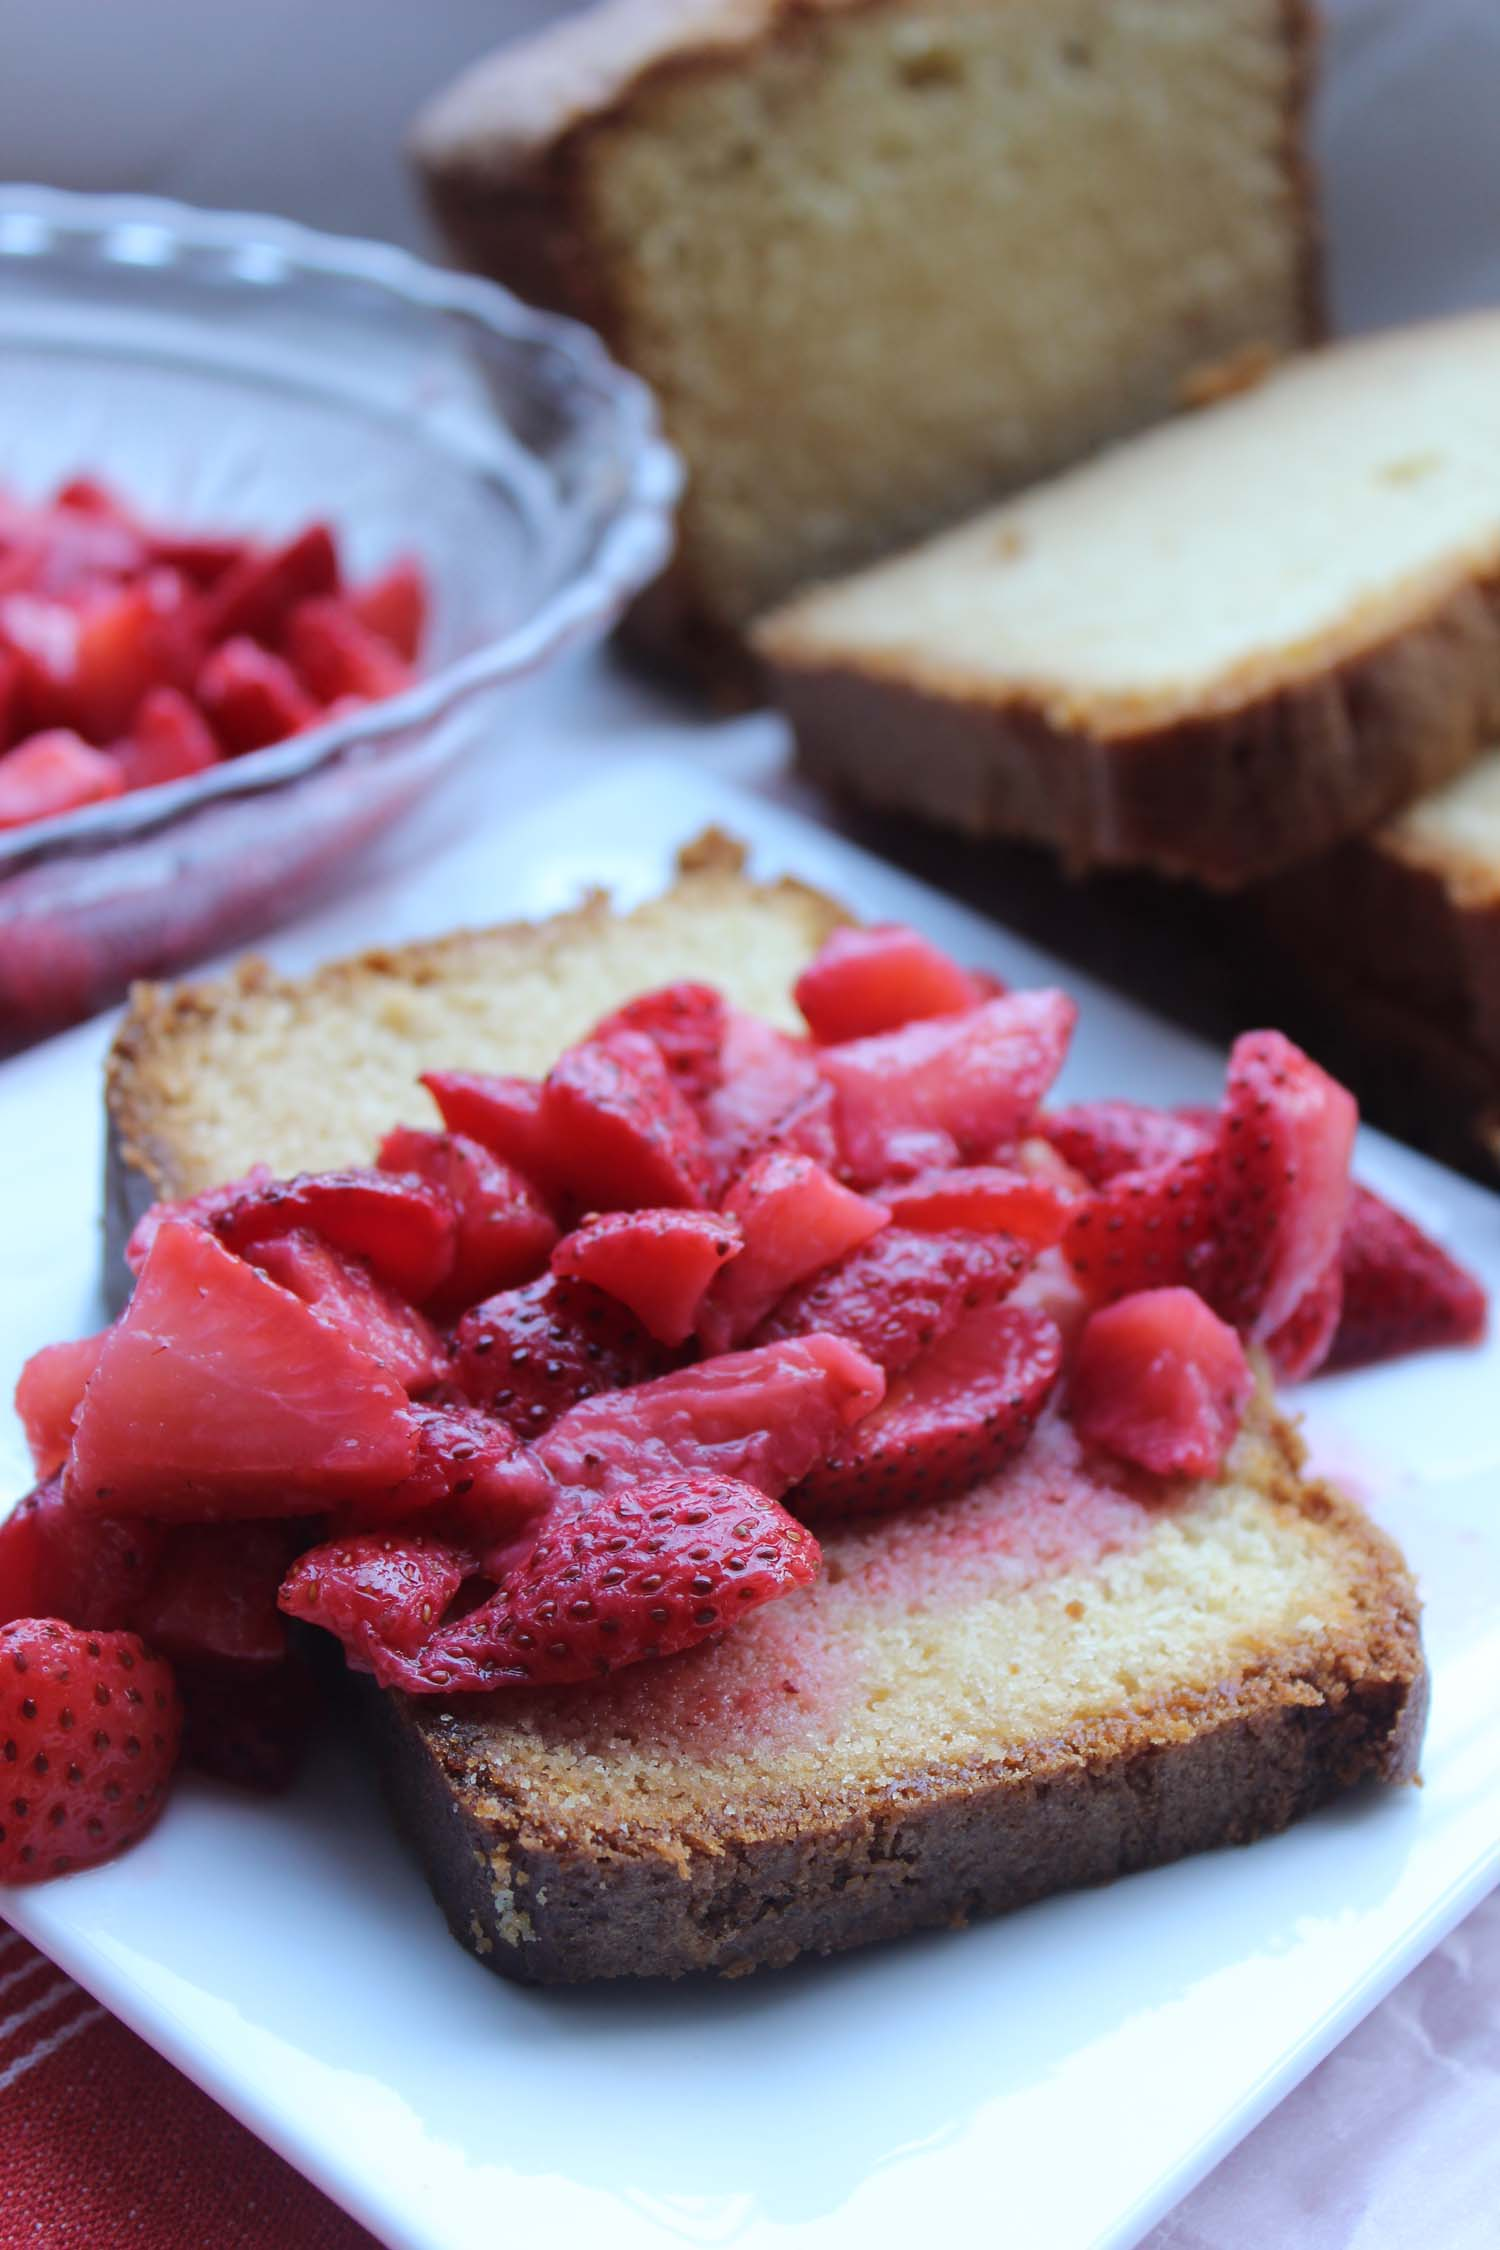 Honey Vanilla Pound Cake with Strawberries  | Image:  Laura Messersmith